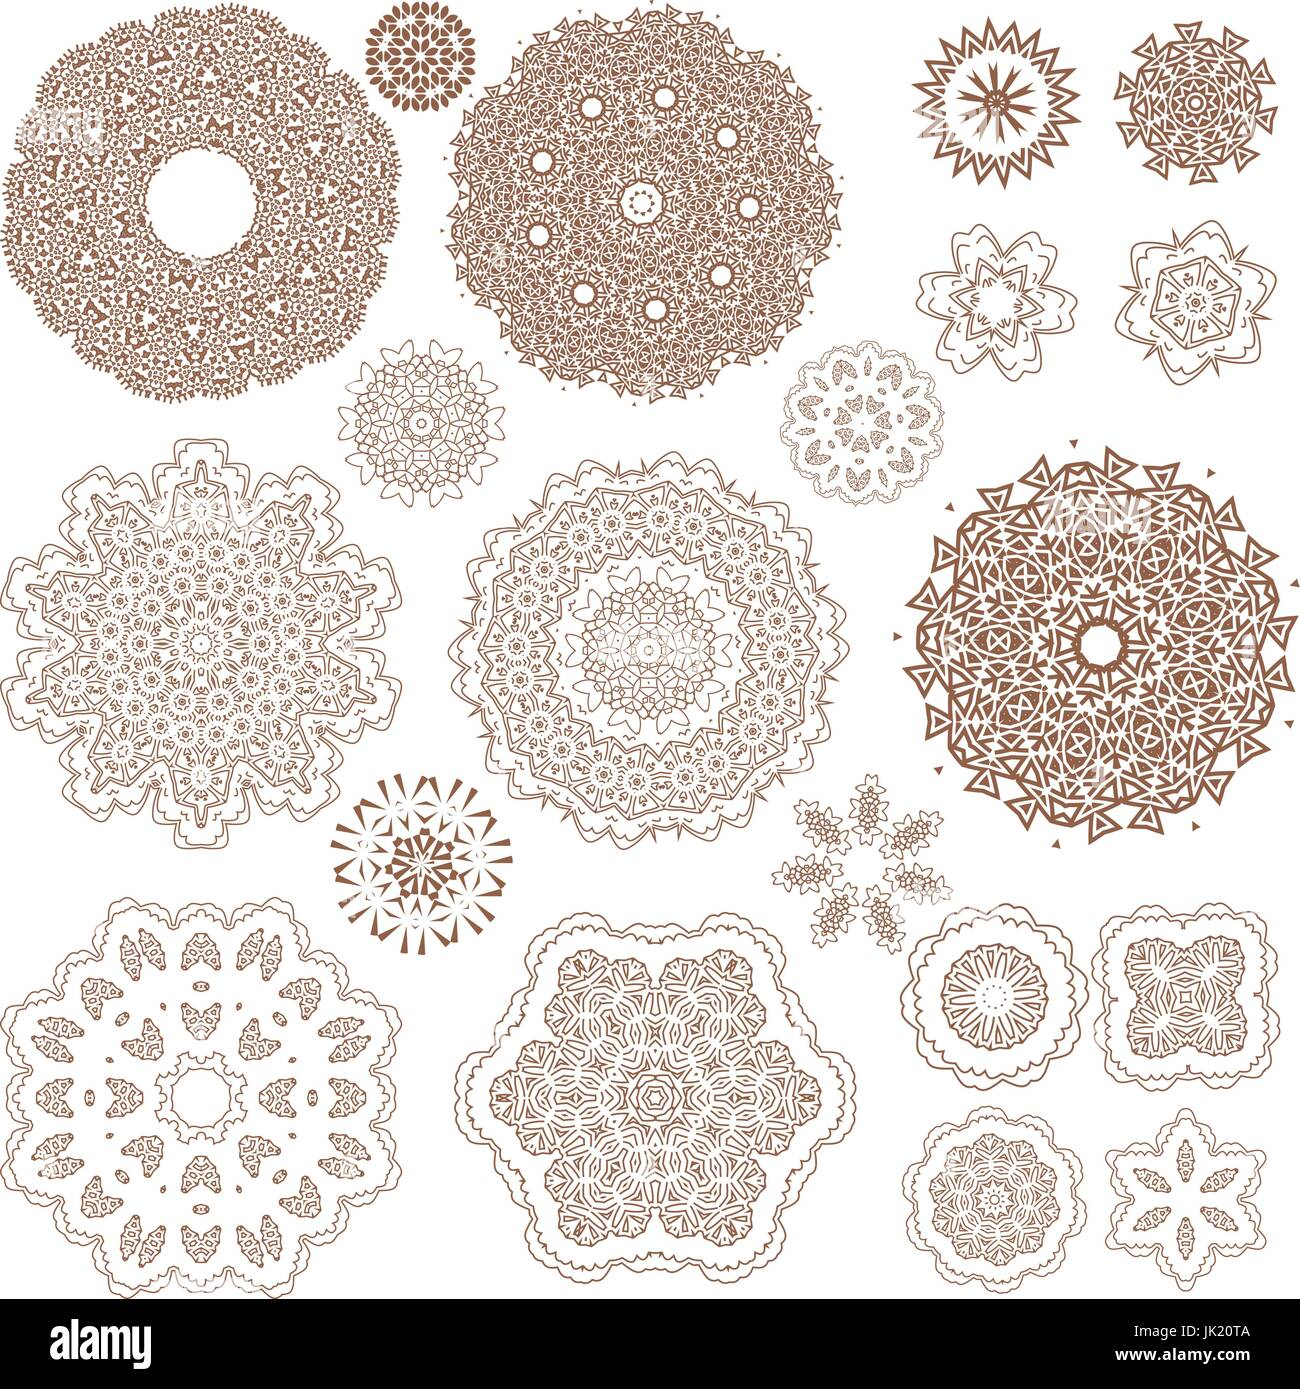 Henna Tattoo Doodle Vector Elements On White Background Art Stock